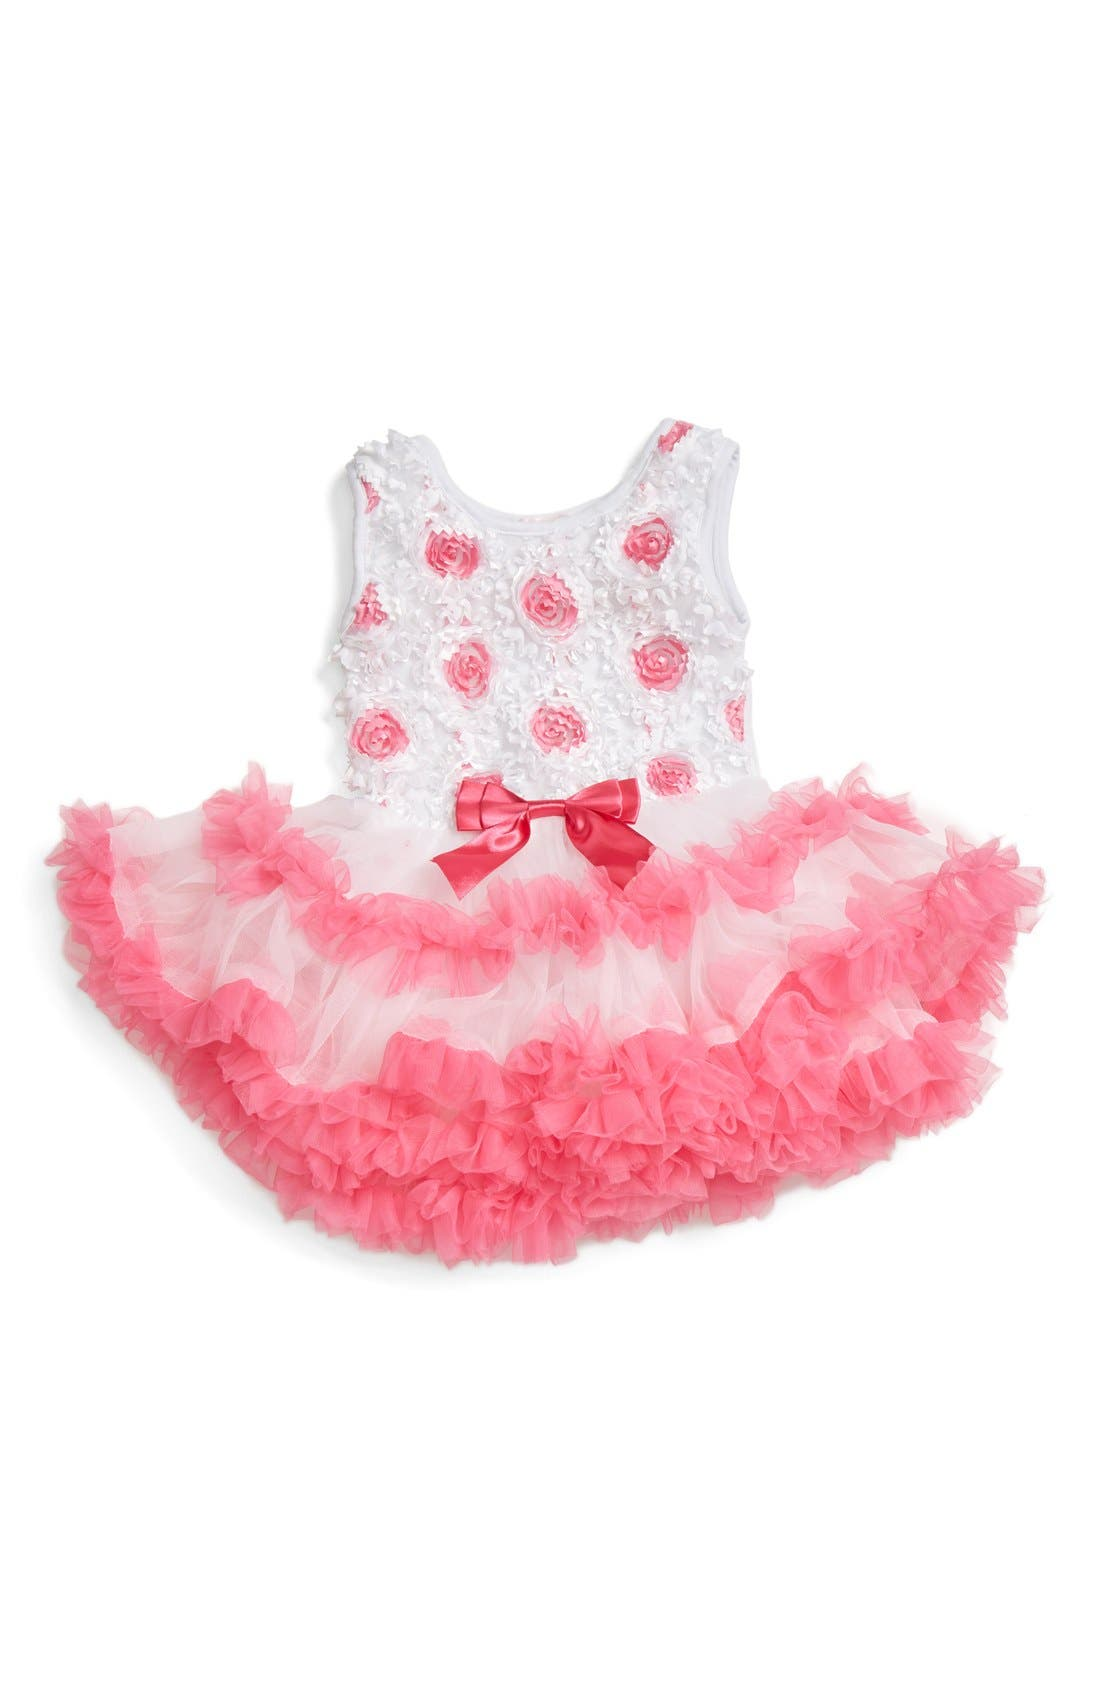 Alternate Image 1 Selected - Popatu Ribbon Rosette Flower Pettidress (Baby Girls)